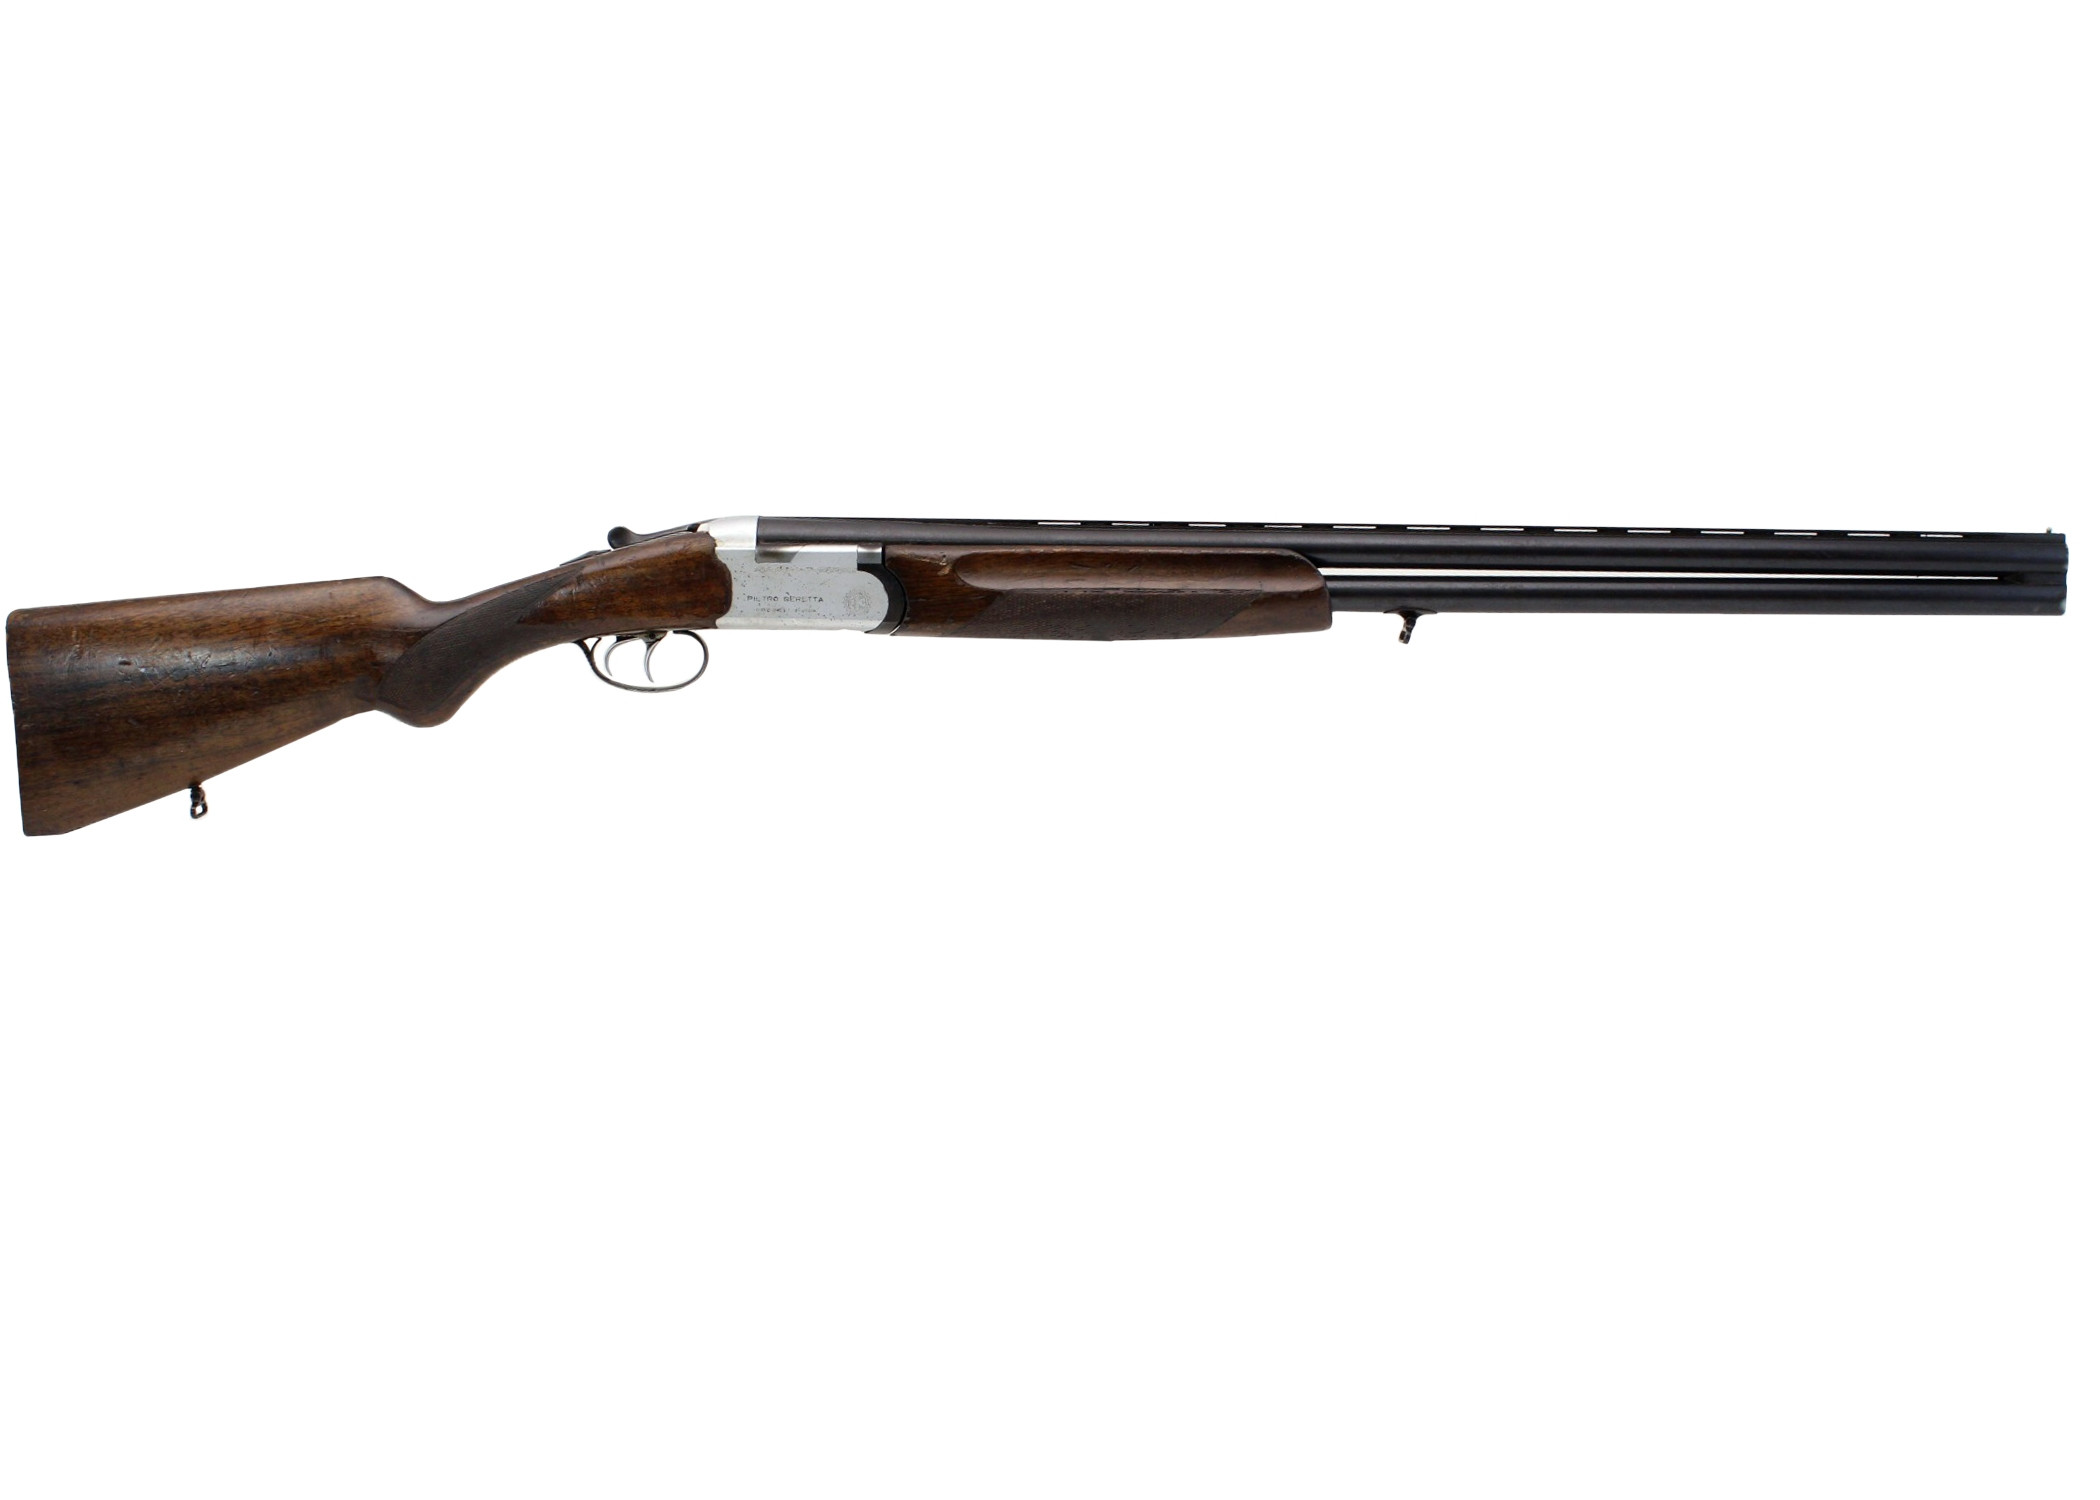 "Beretta S54, 12GA, 28"" Barrel"